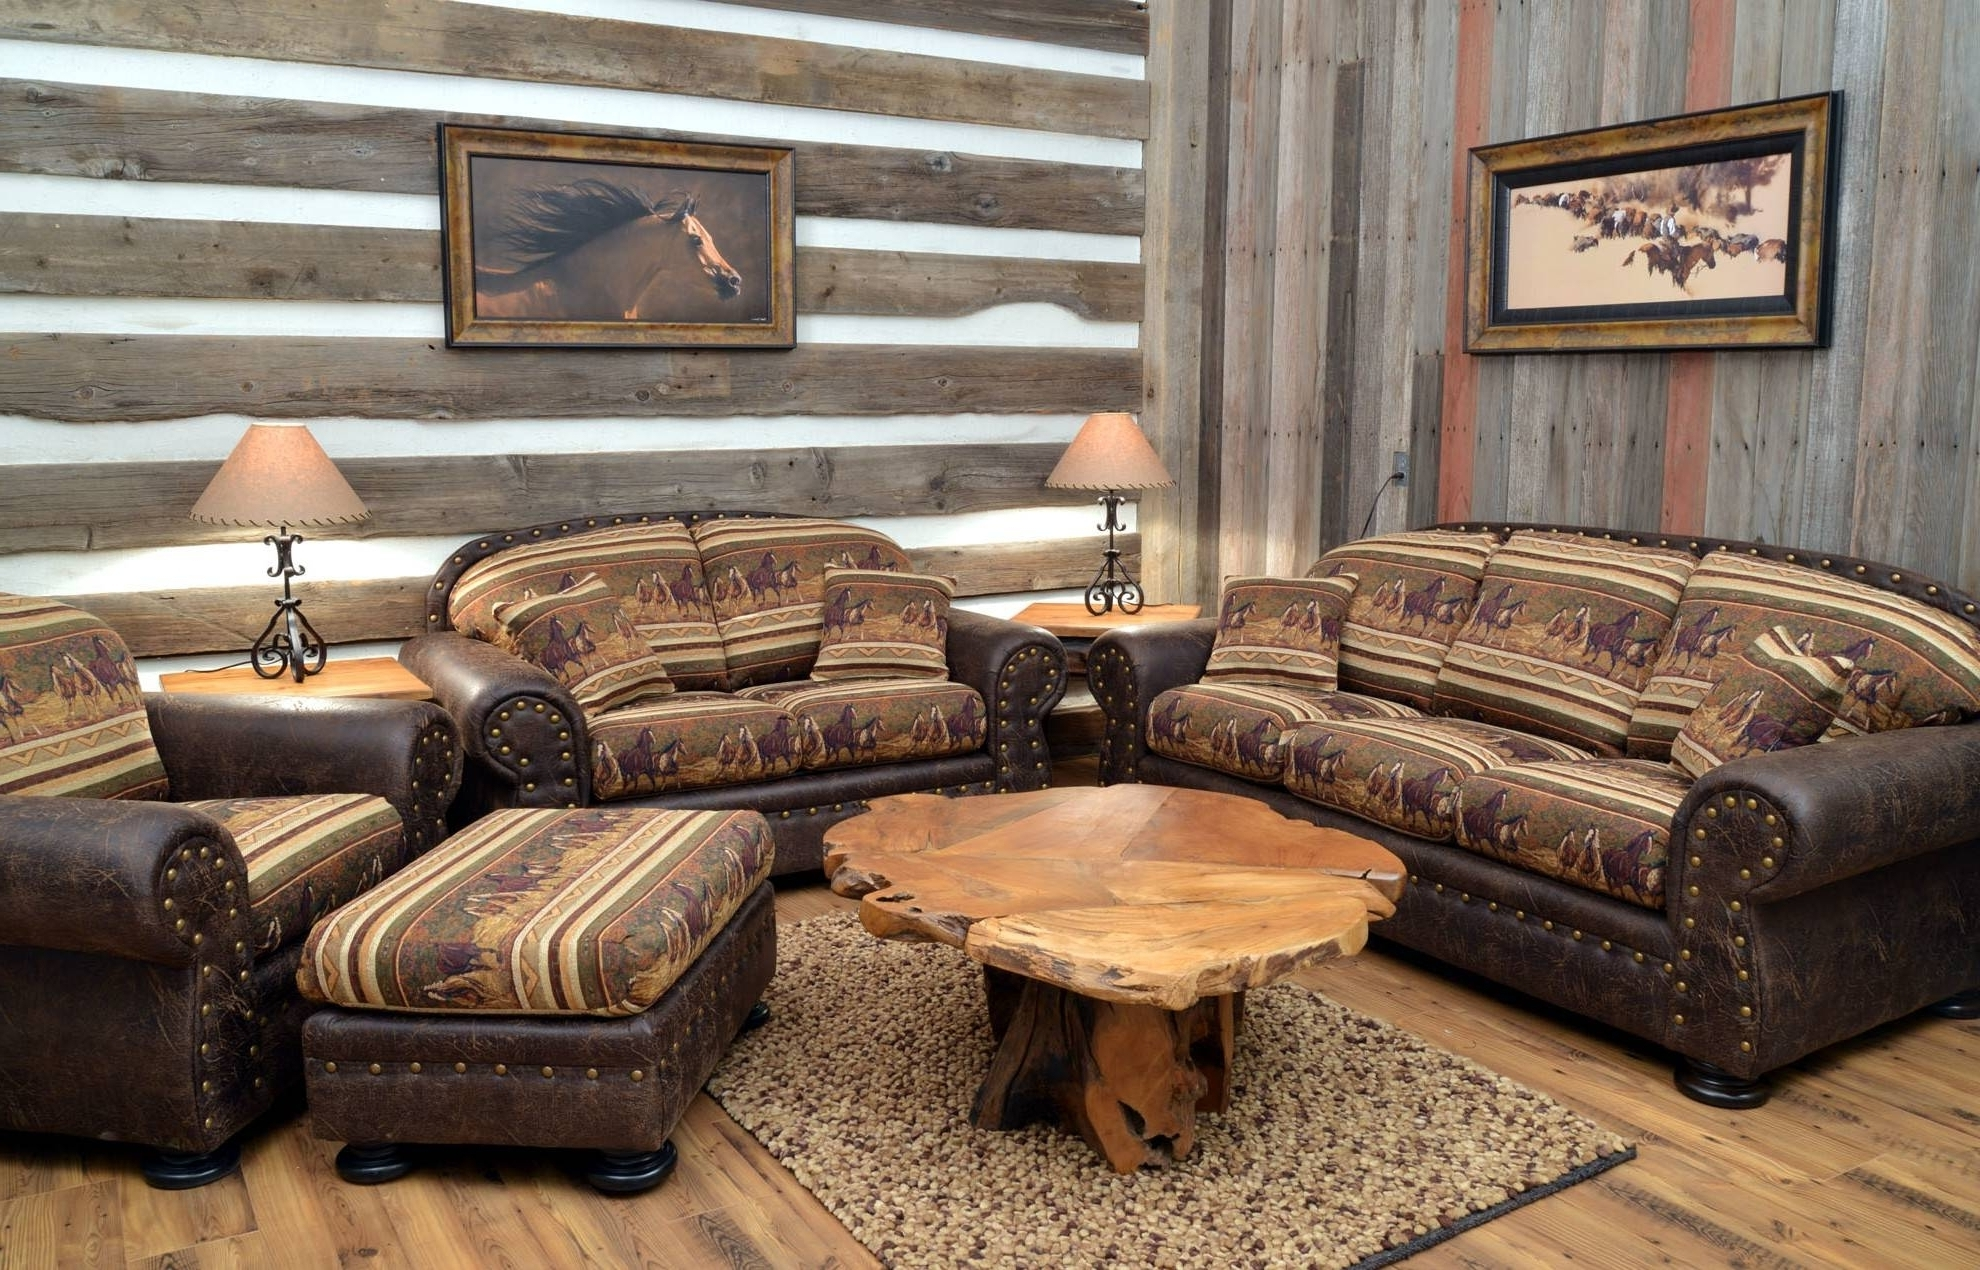 2019 Sofa Rustic Sectional Sofas With Recliners Style Leather Chaise Intended For Sectional Sofas In Stock (View 2 of 20)